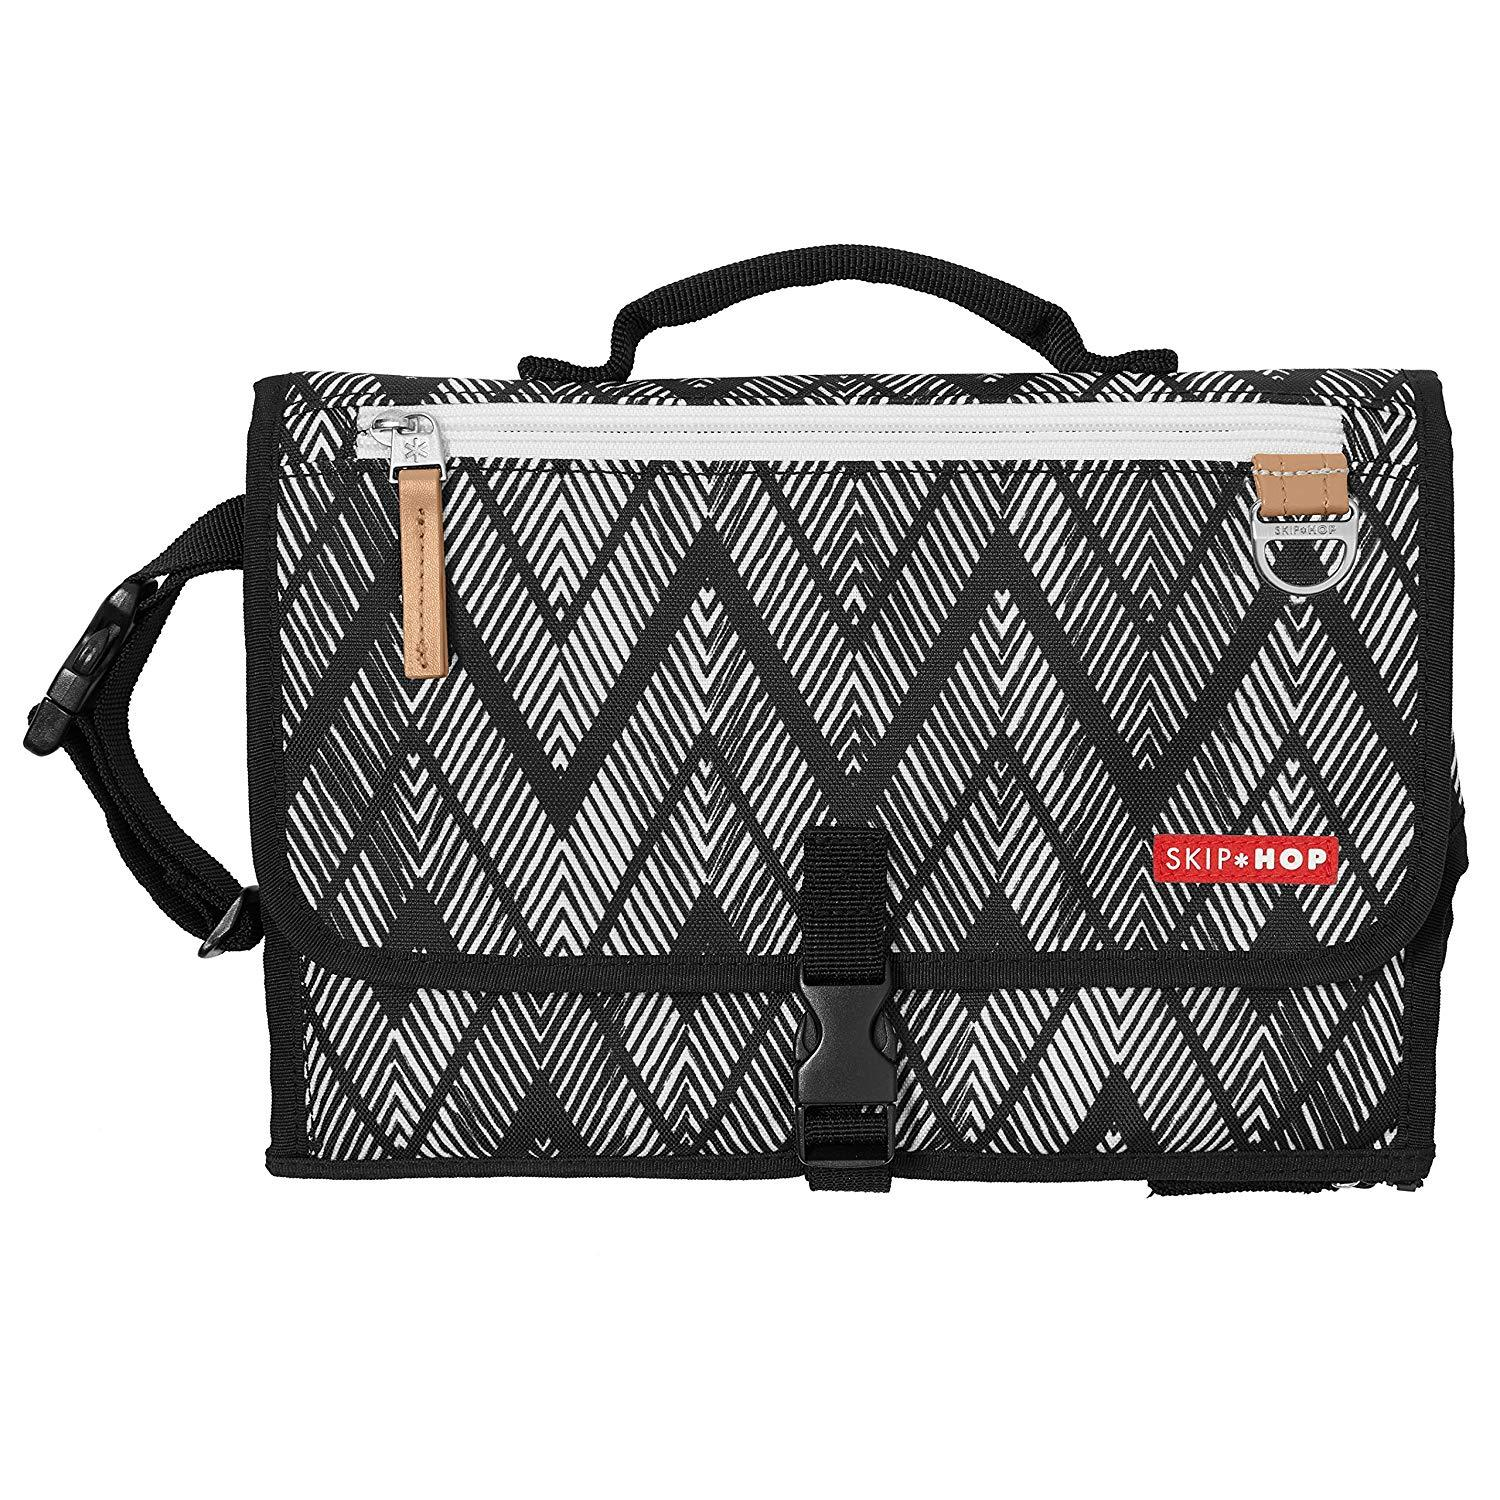 Skip Hop Pronto Diaper Changing Station Bag - Zig Zag Zebra